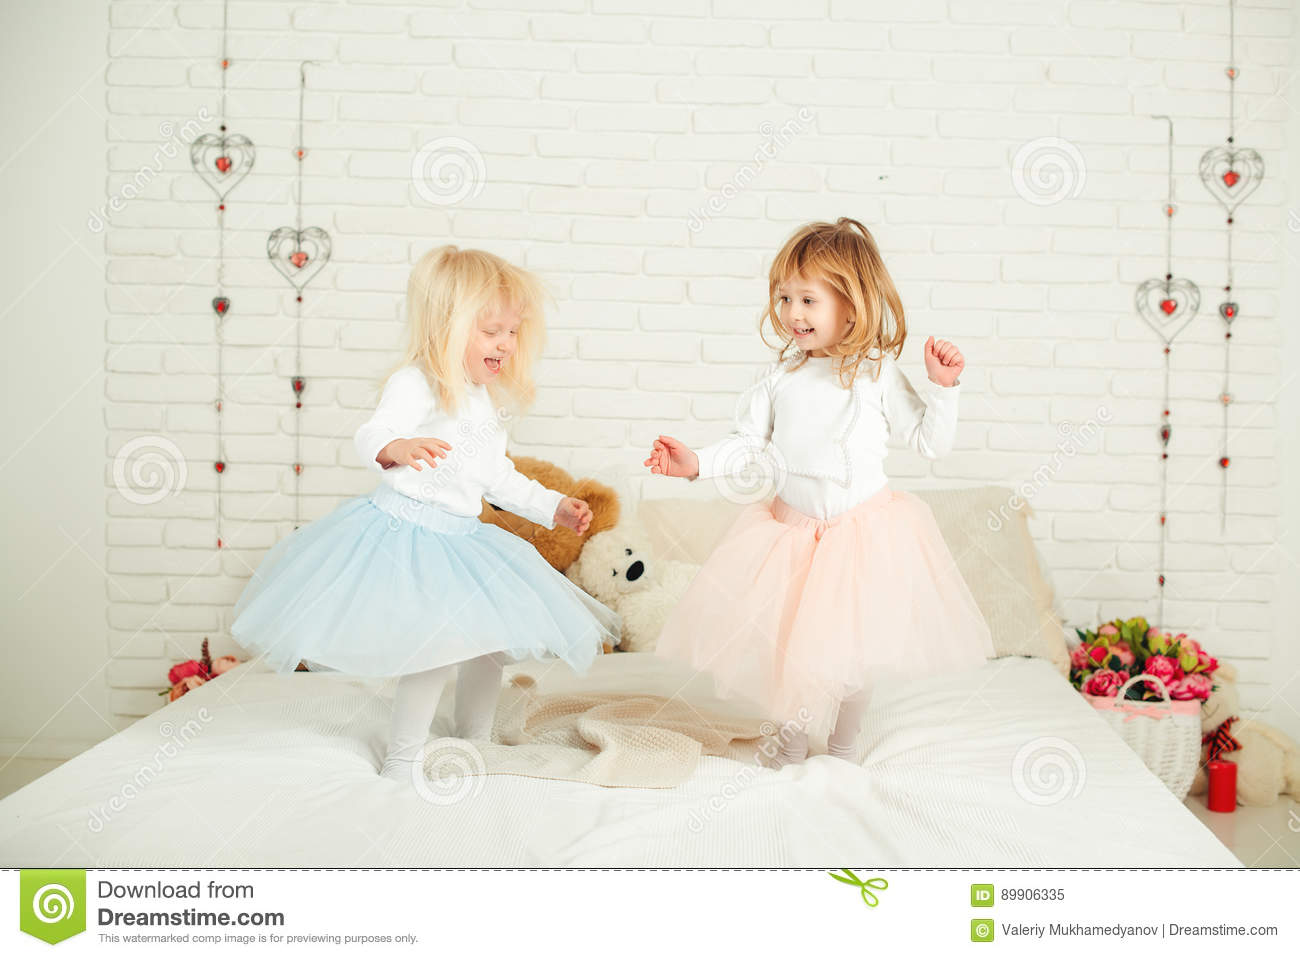 Two little girls in nice dresses in fun jumping on a bed.